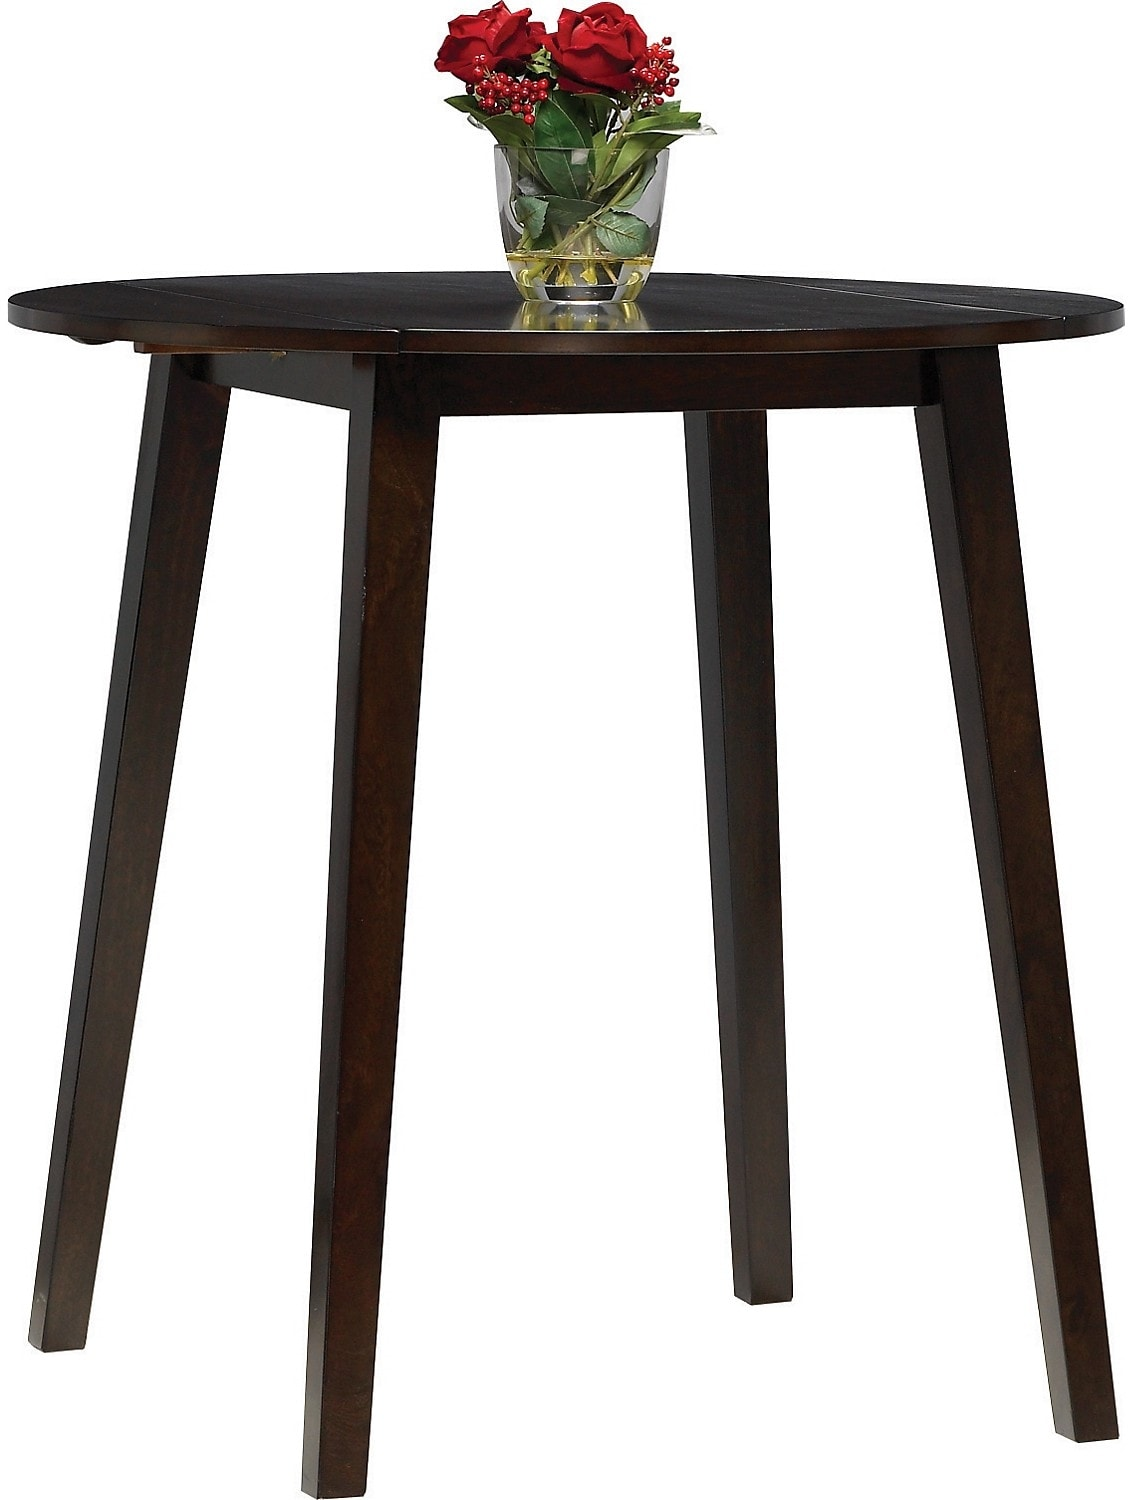 Adara Round Drop Leaf Counter Height Dining Table The Brick : 337575 from www.thebrick.com size 1128 x 1500 jpeg 305kB